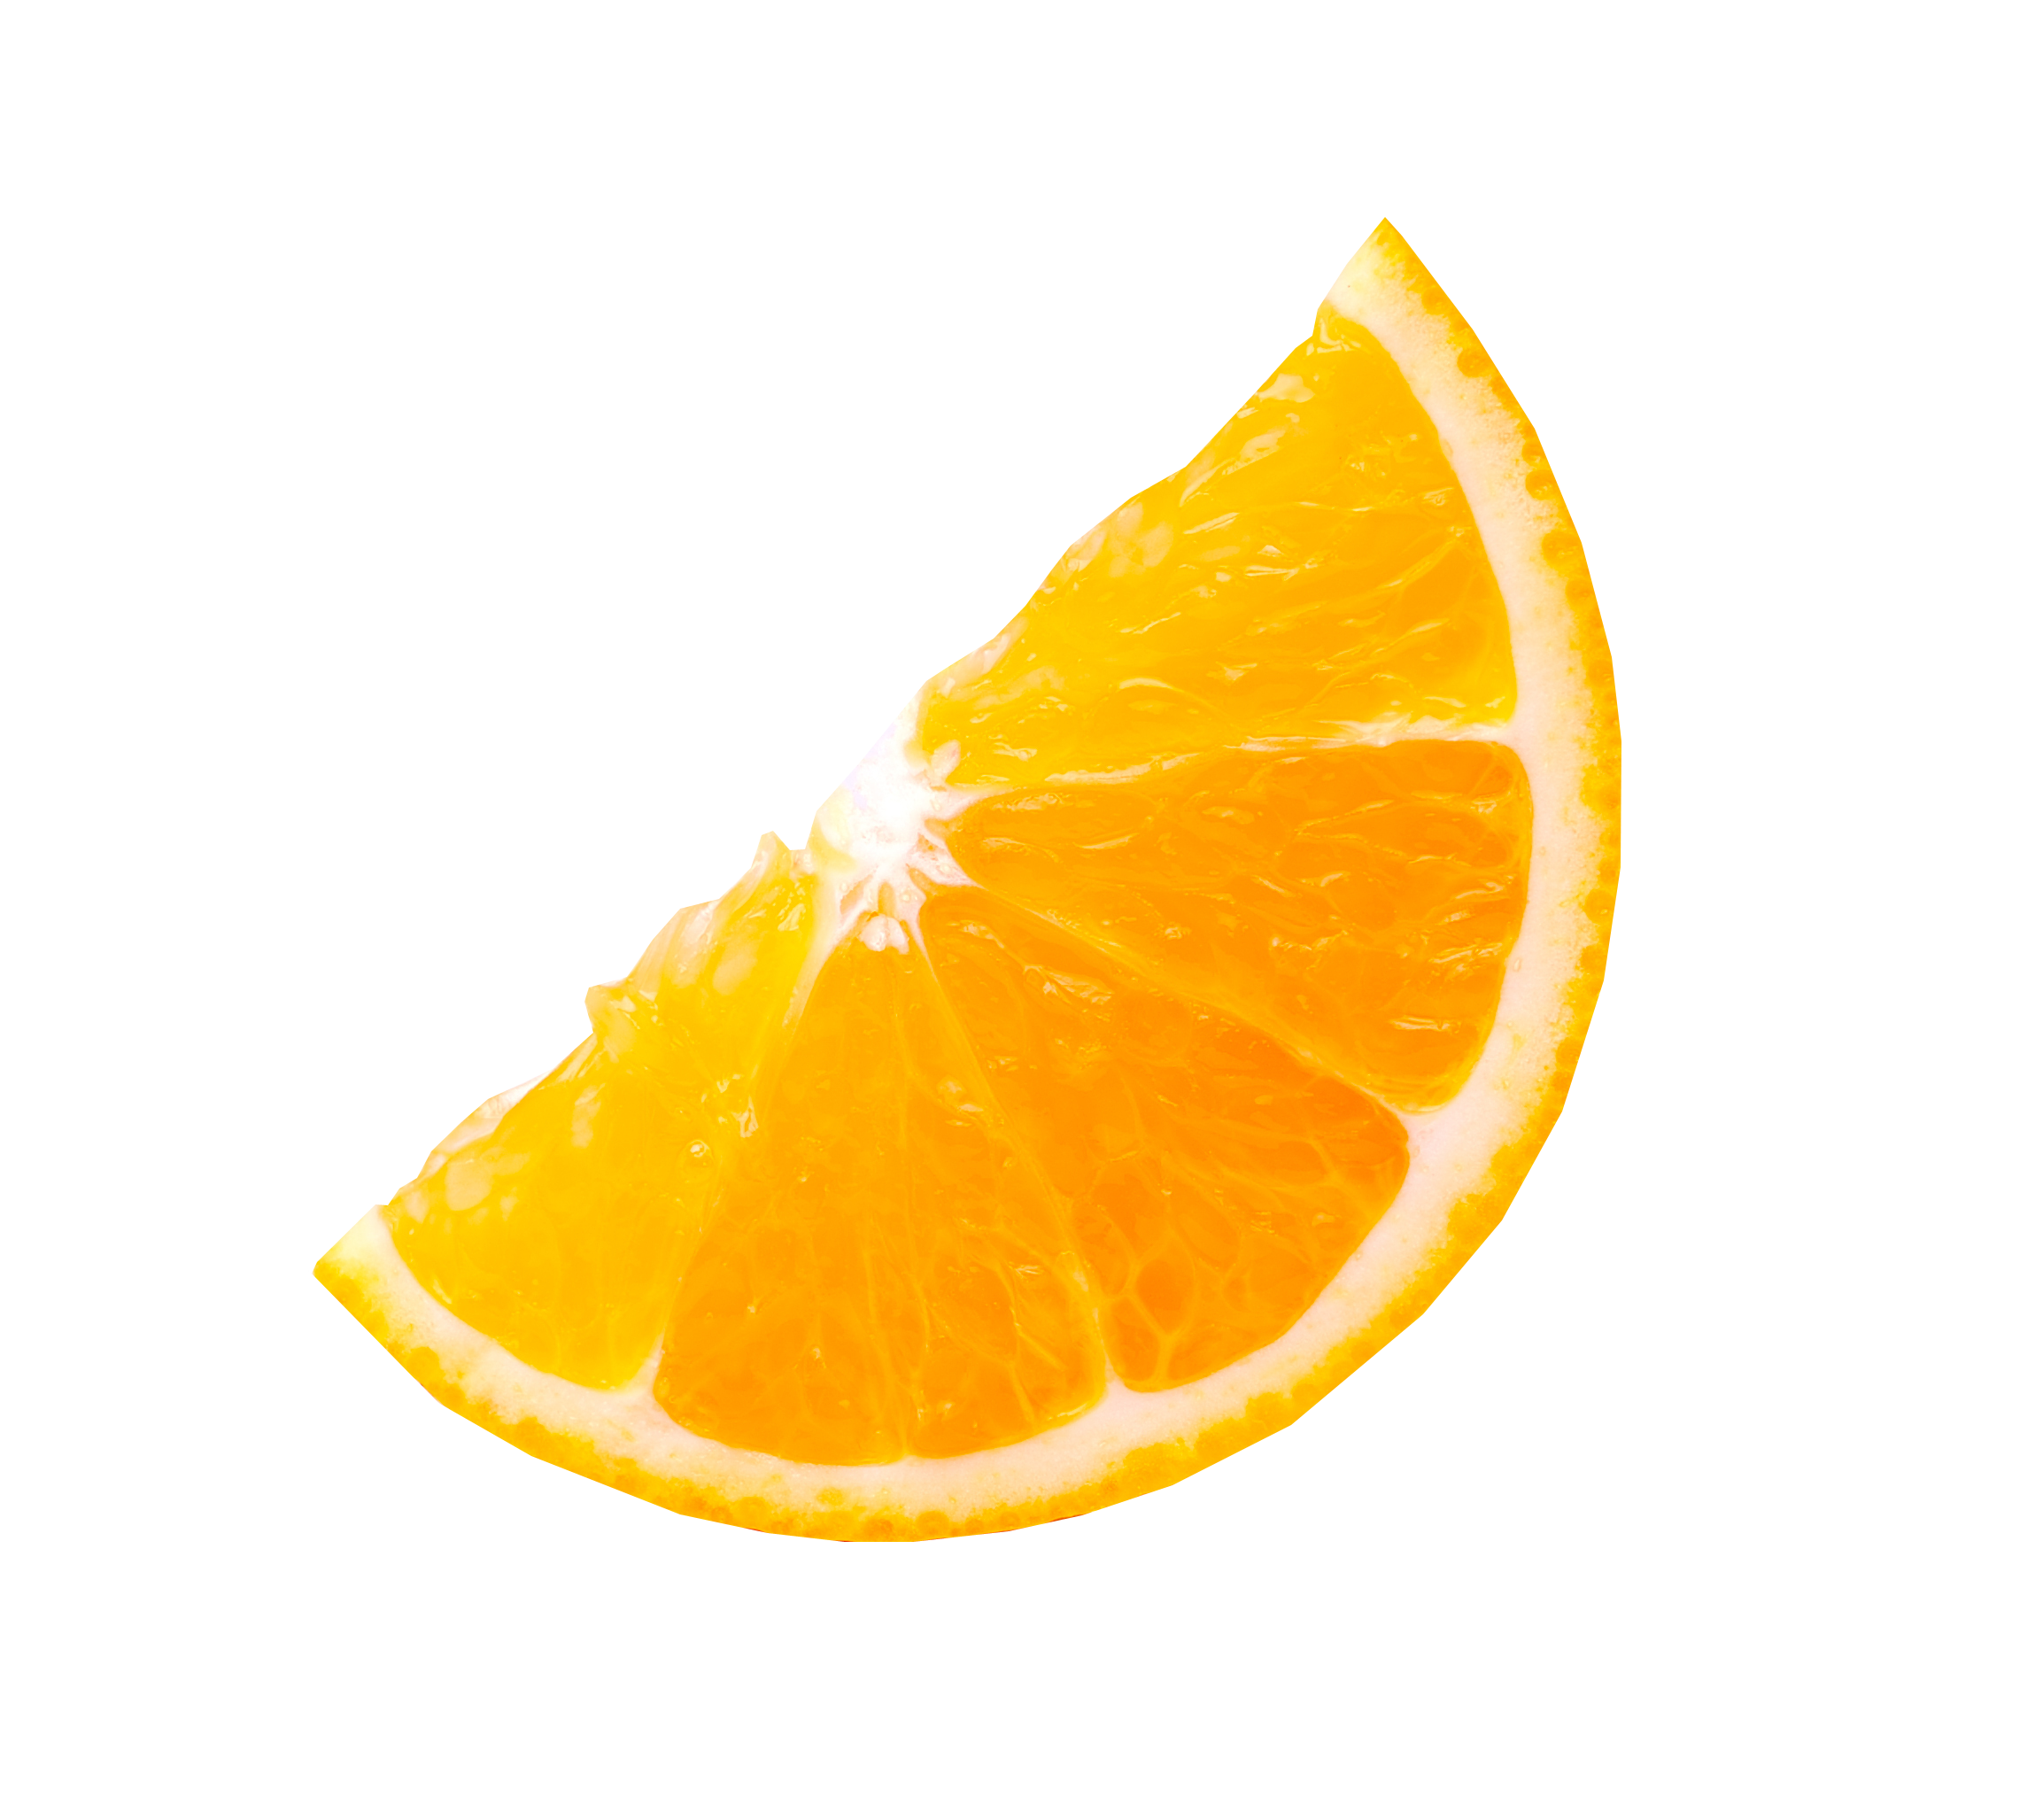 orange, ingredients #15293